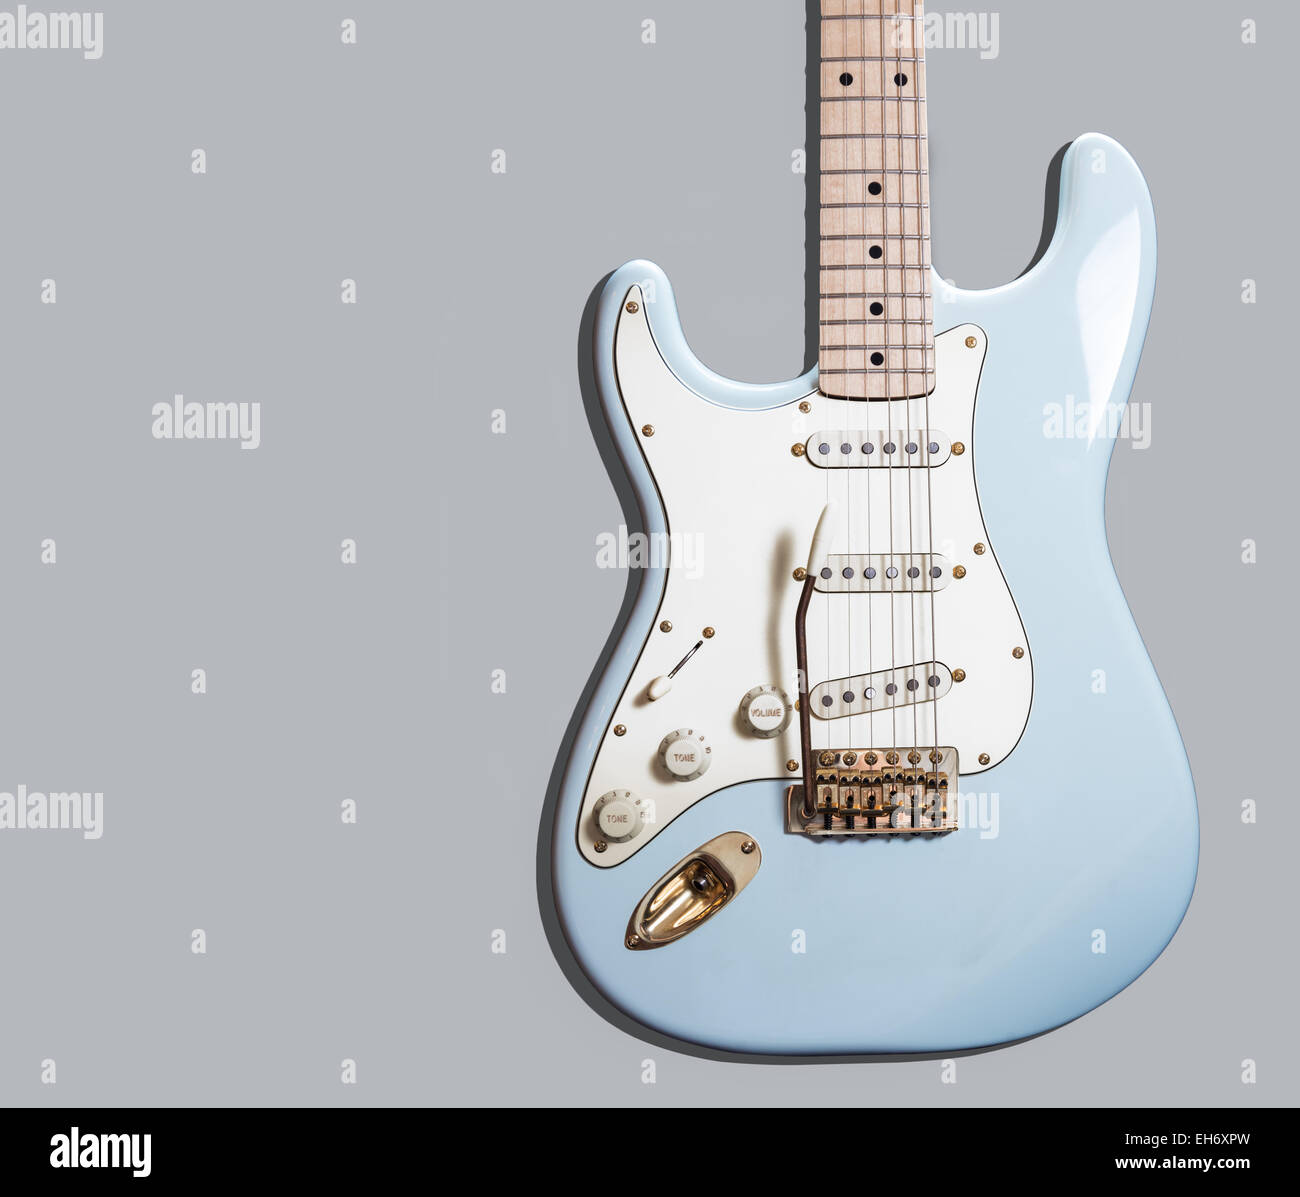 A pale blue electric guitar against a gray background Stock Photo